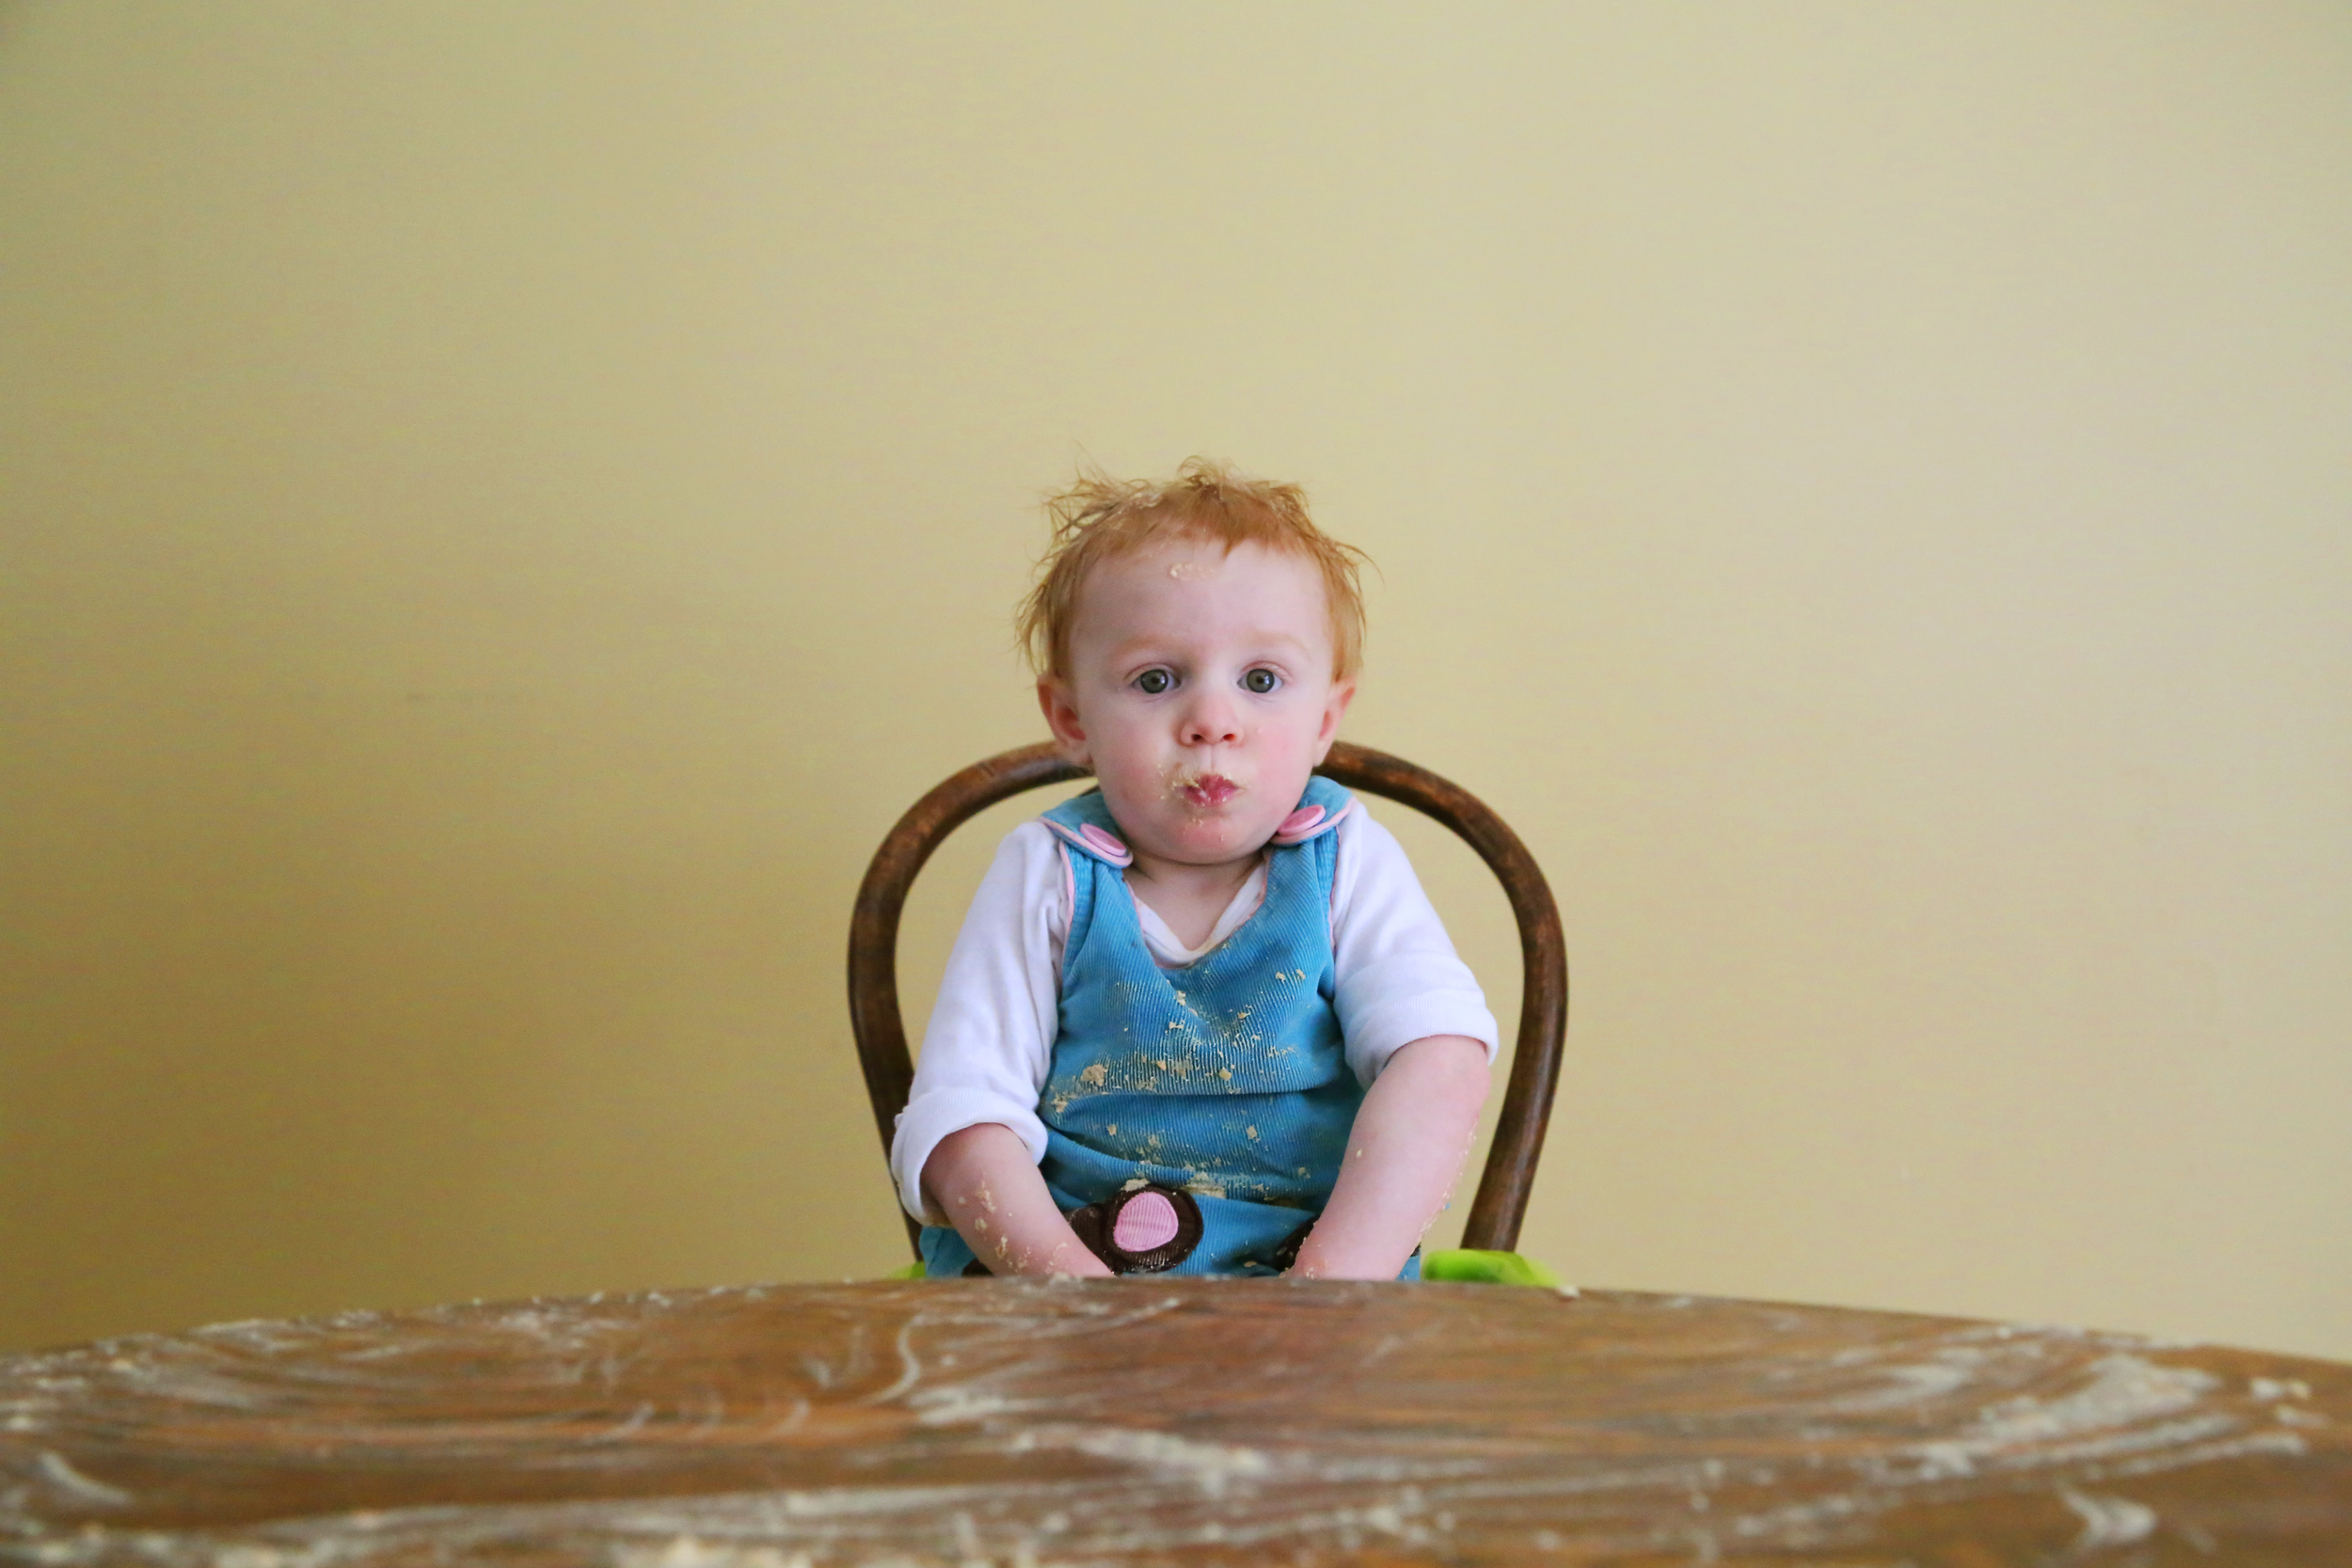 Days in our household since at least one child has shampooed him or herself with at least one meal: zero.